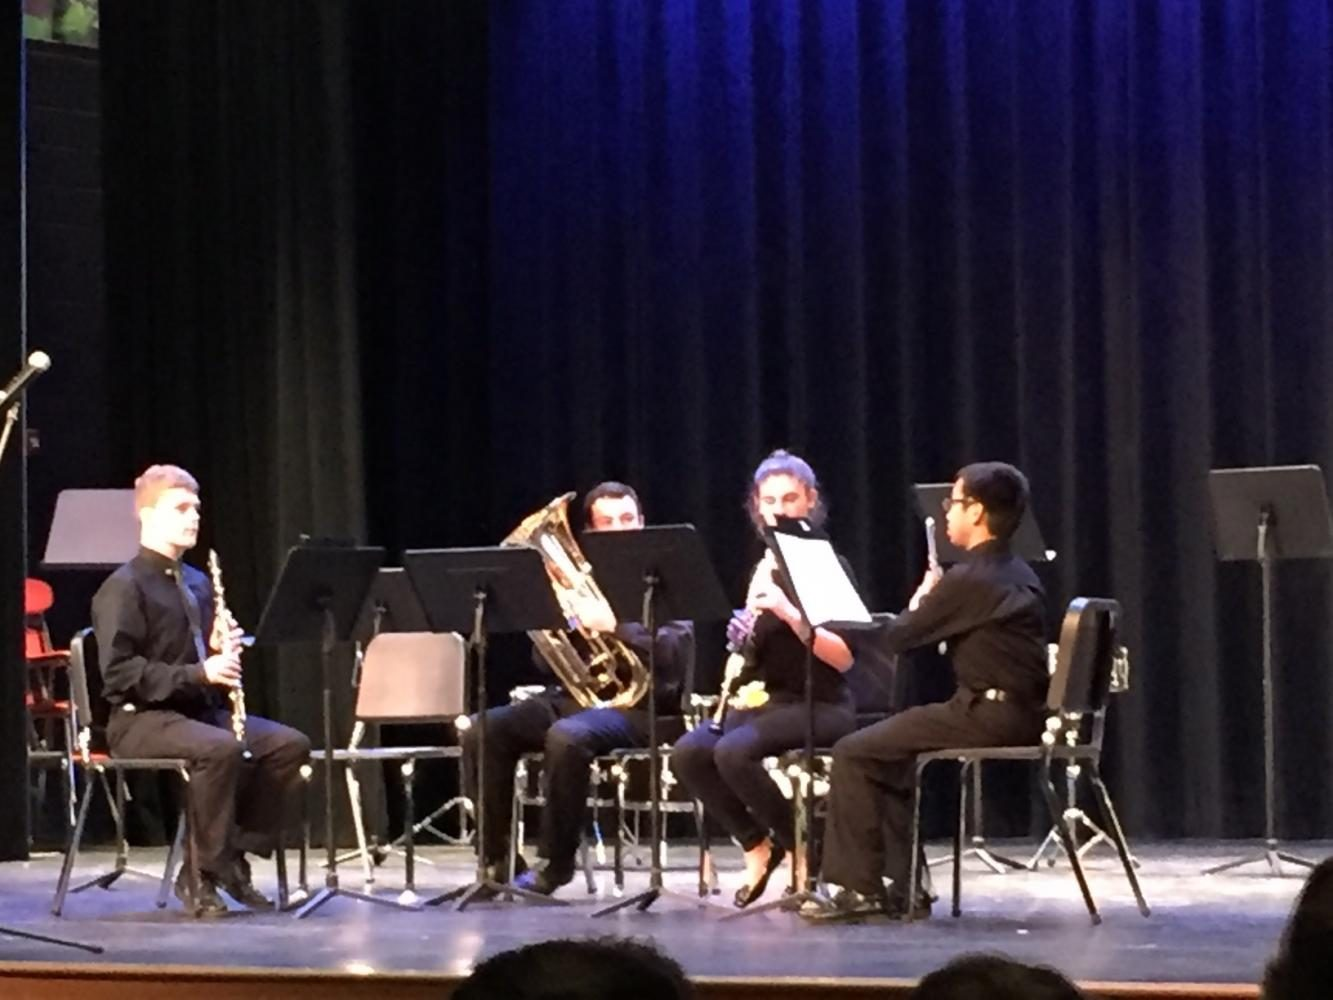 Left+to+right+freshmen+Raphael+Alexander%2C+Tim+Wagner%2C+Gwen+Johnson%2C+and+senior+Justin+Moczynski+played+a+piece+composed+by+Justin.++